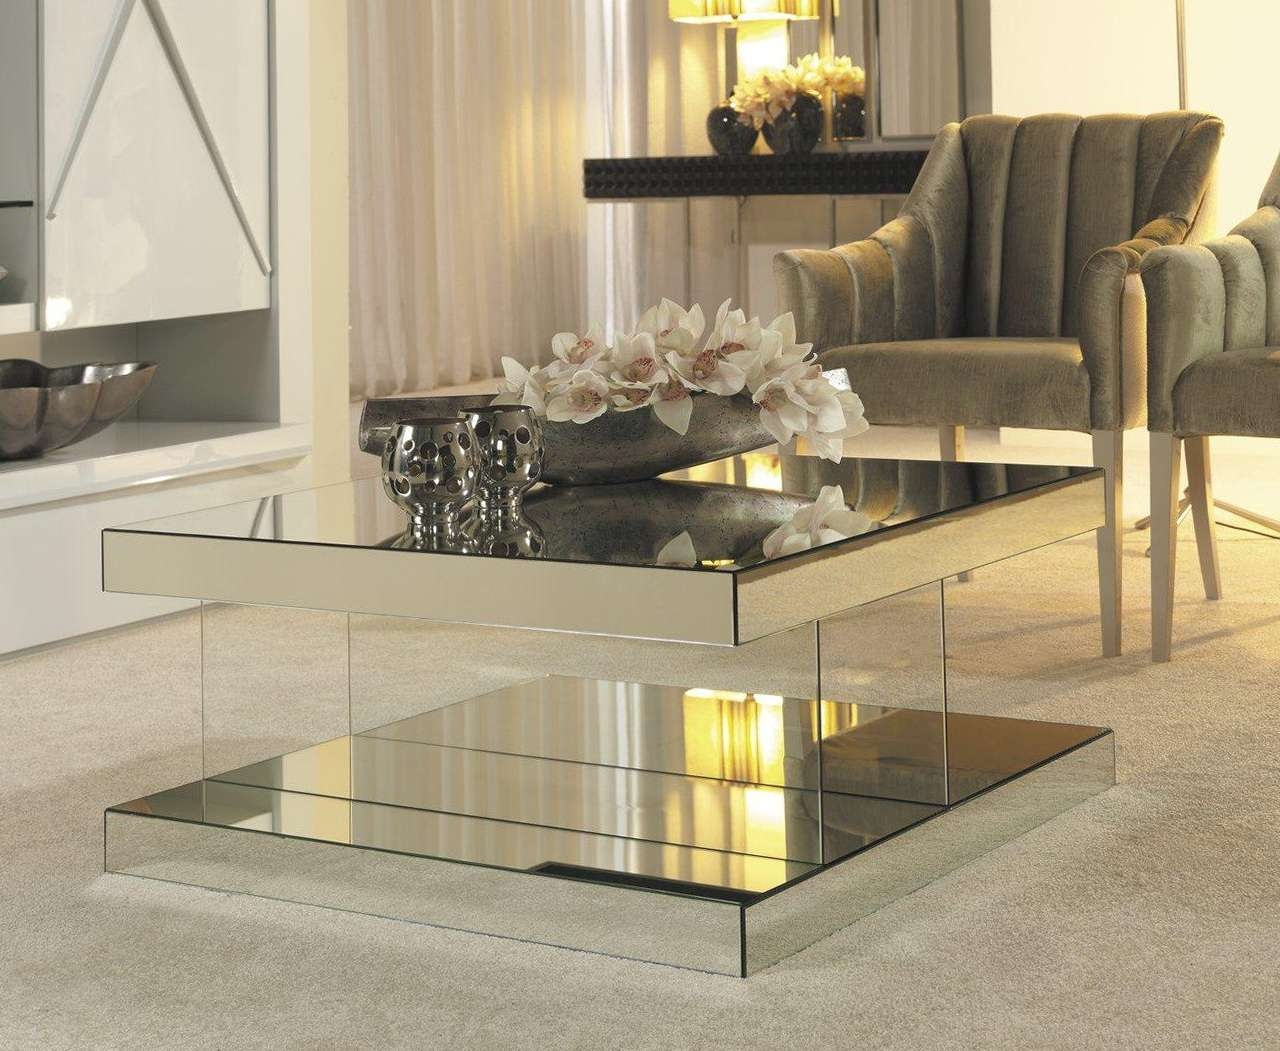 Luxury Mirrored Coffee Table — Cabinets, Beds, Sofas And For Preferred Luxury Coffee Tables (View 17 of 20)